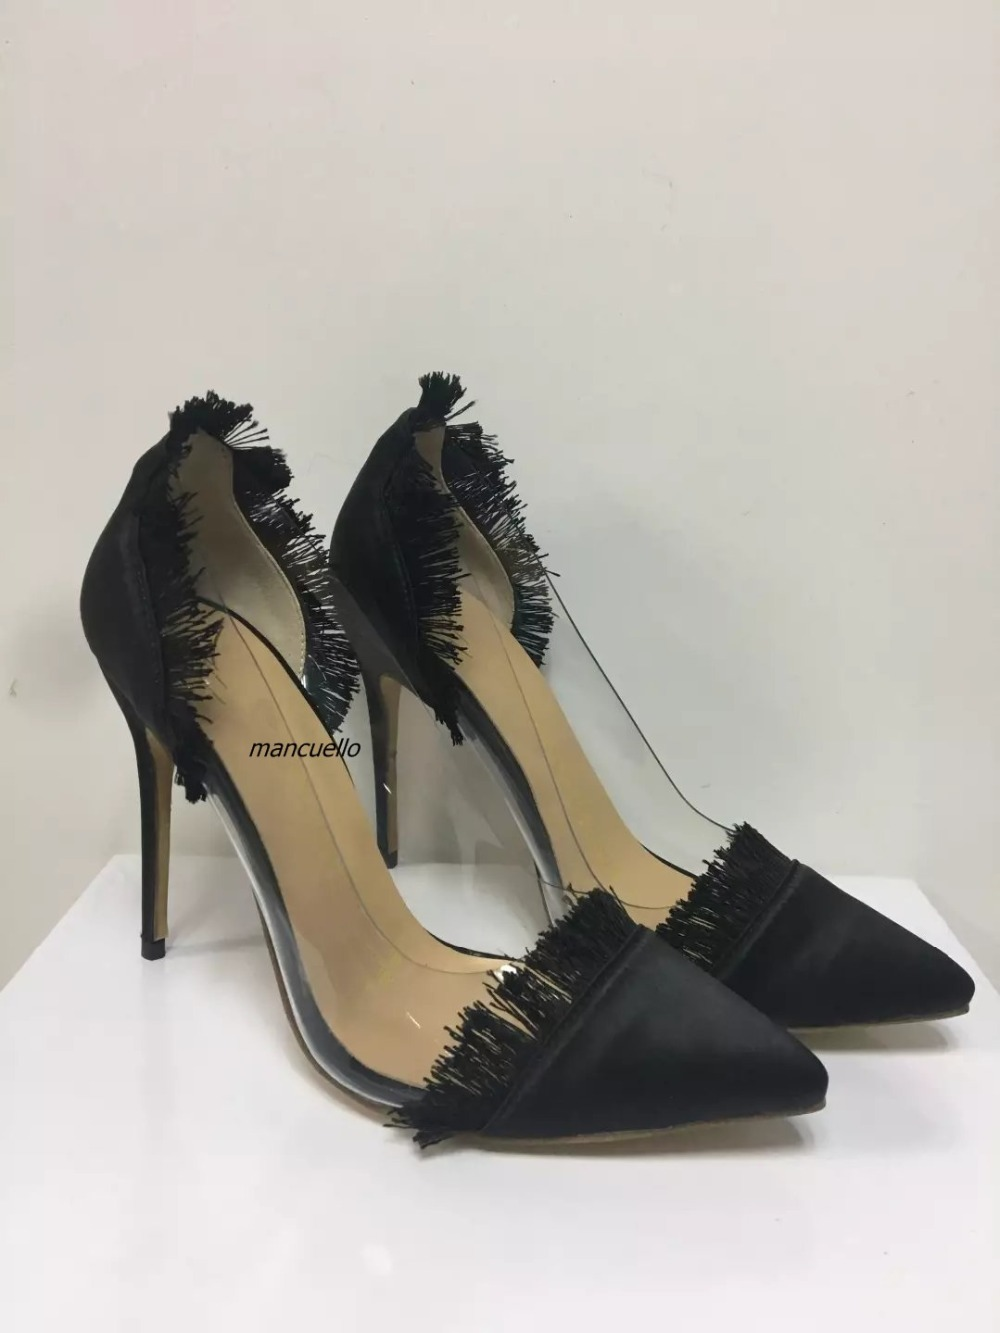 Classy Black Silk Patchwork Heels Sexy Pointy Side Clear Stiletto Heel Fringe Edge Pumps Women Fashion Dress Shoes New Arrival